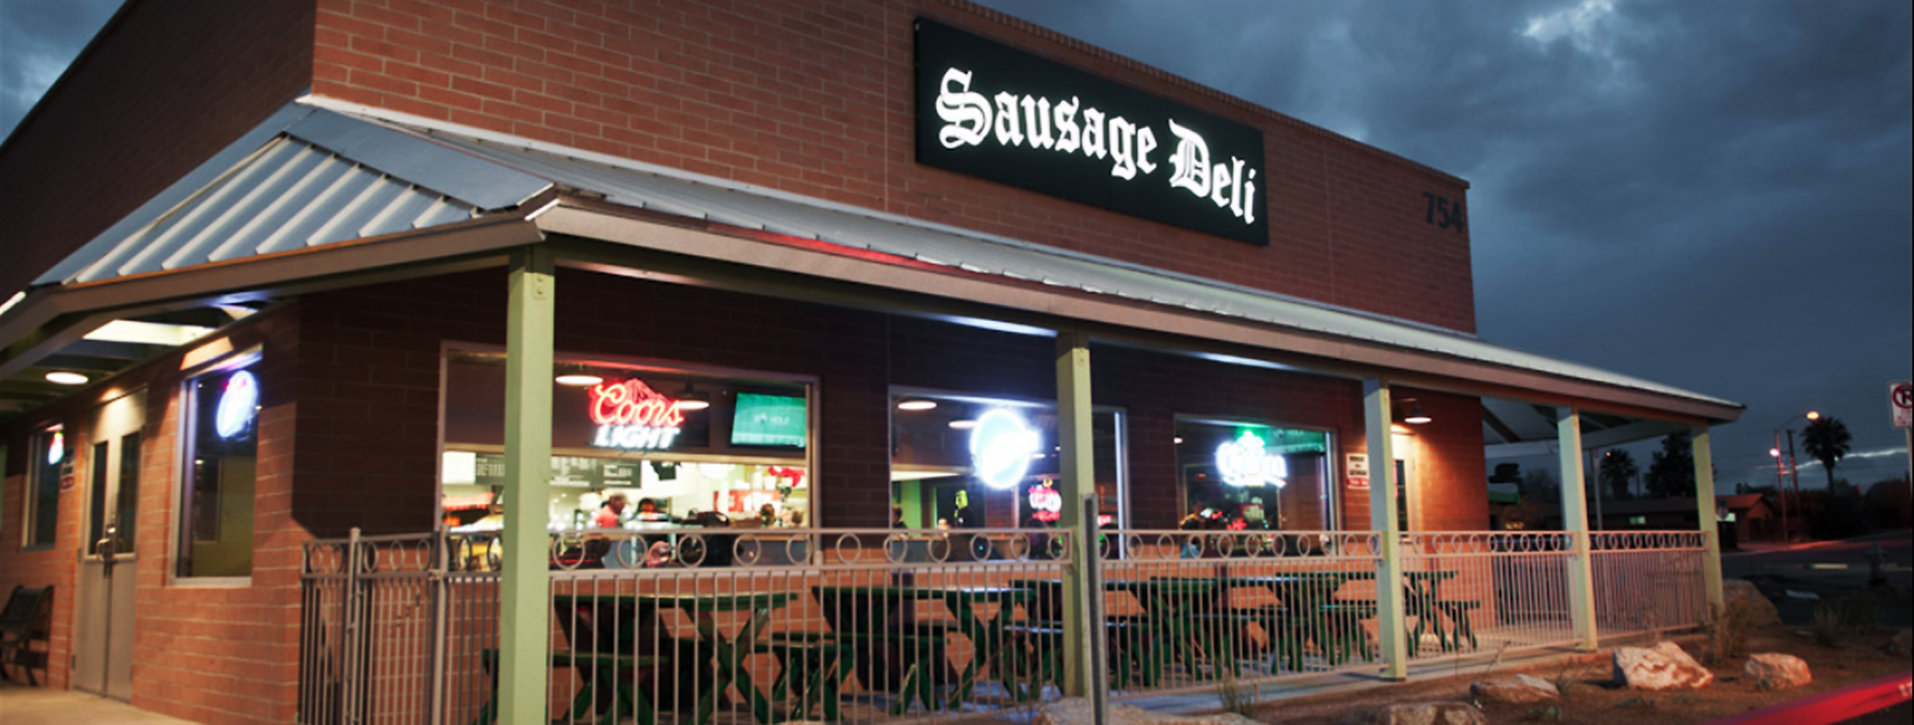 Sausage Deli Outside Photo.jpg